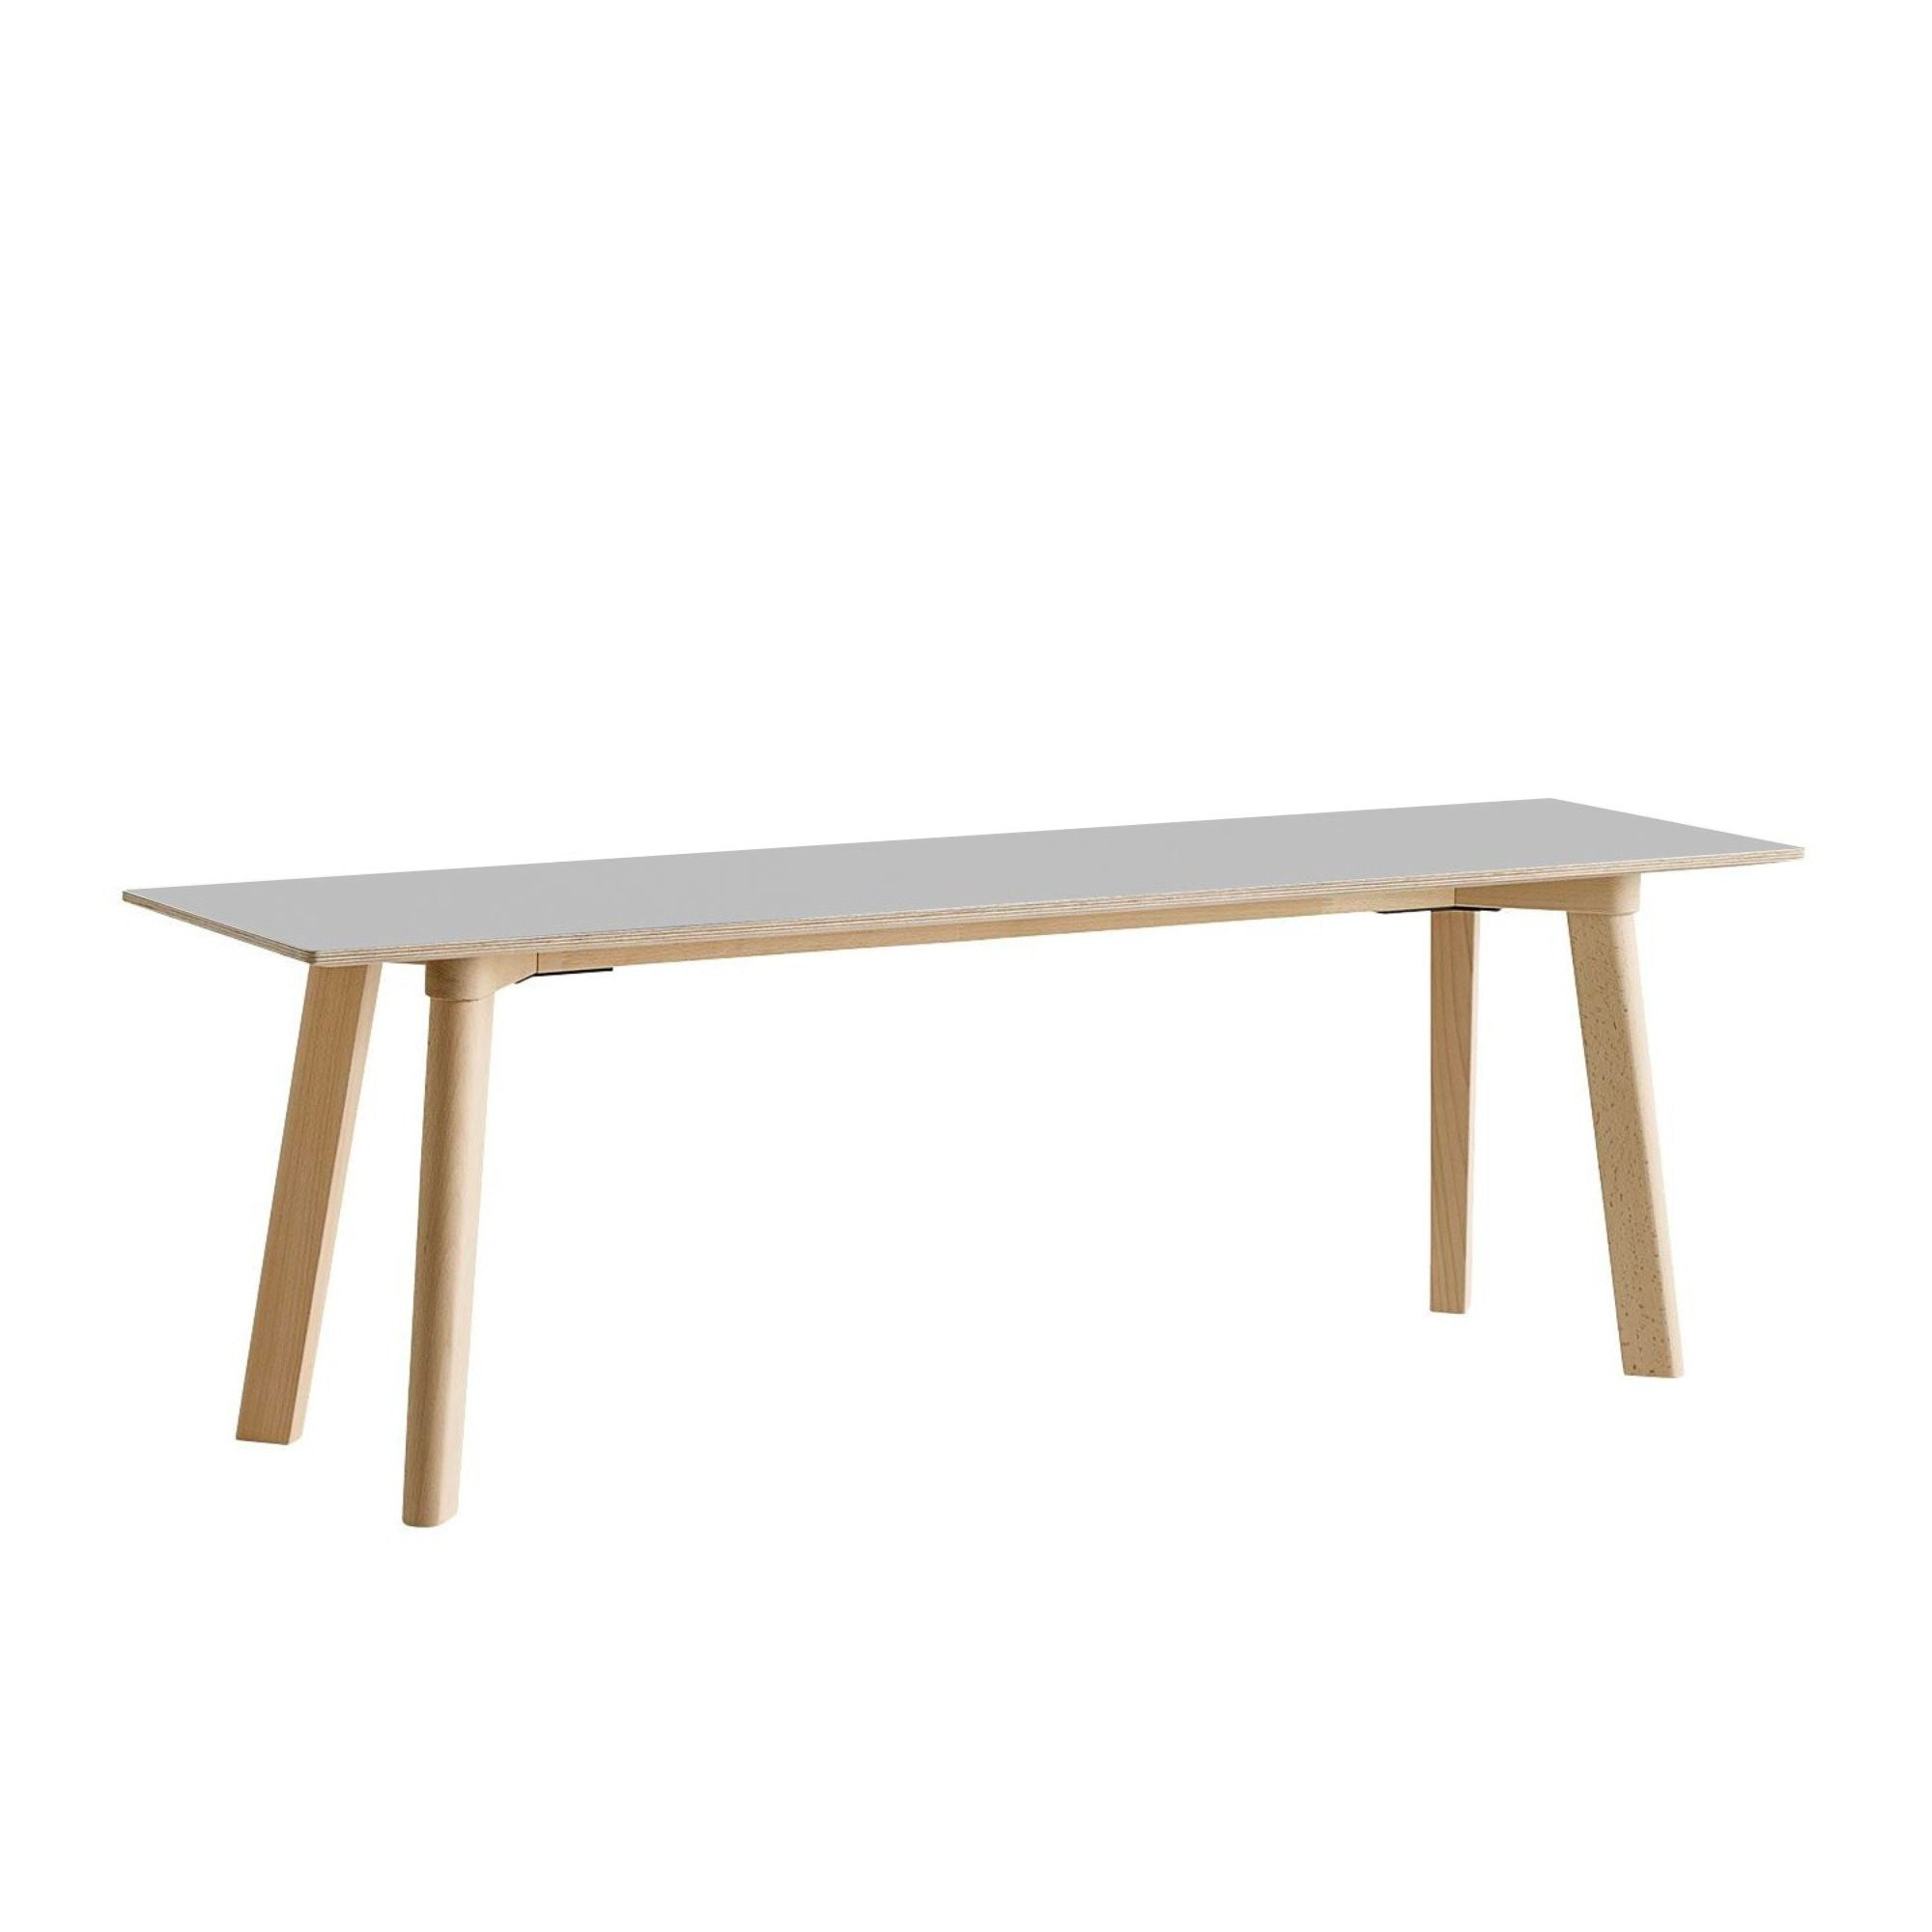 CPH DEUX215 Bench, Dusty grey laminate top - Matt Lacquered Solid oak leg